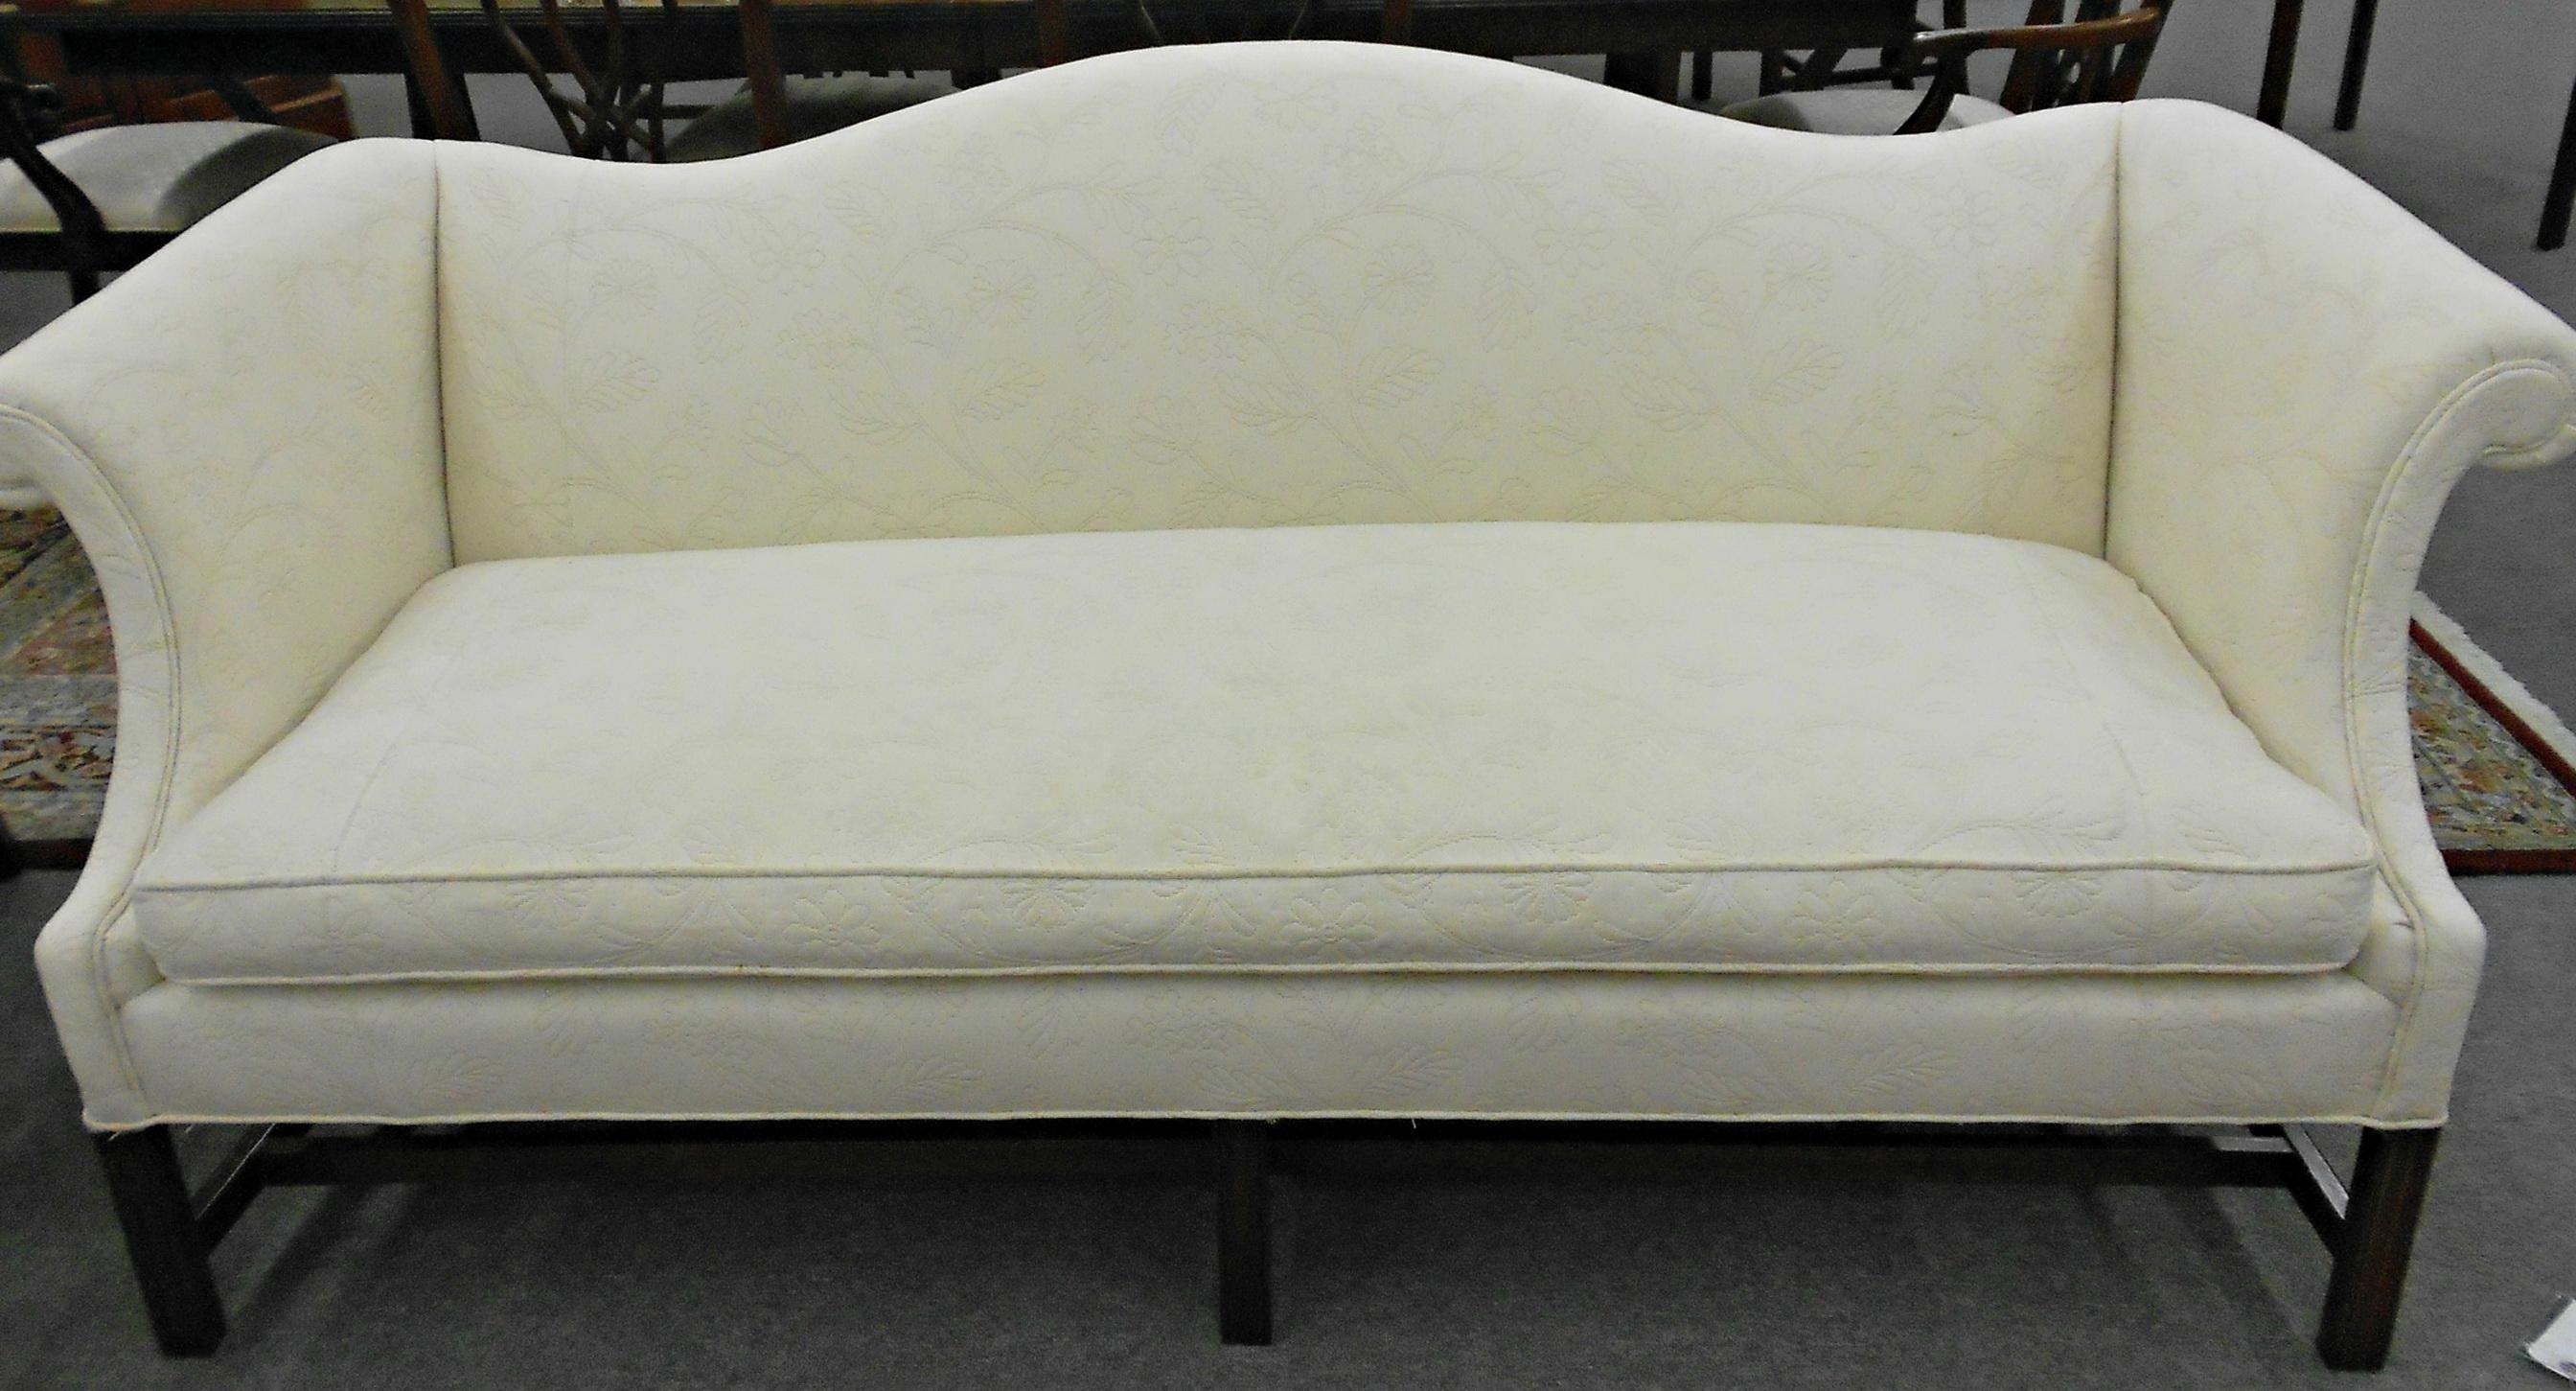 Sofas Center : Sofa White Camel Back Couch Beautiful Slipcover For With Camelback Slipcovers (View 15 of 20)